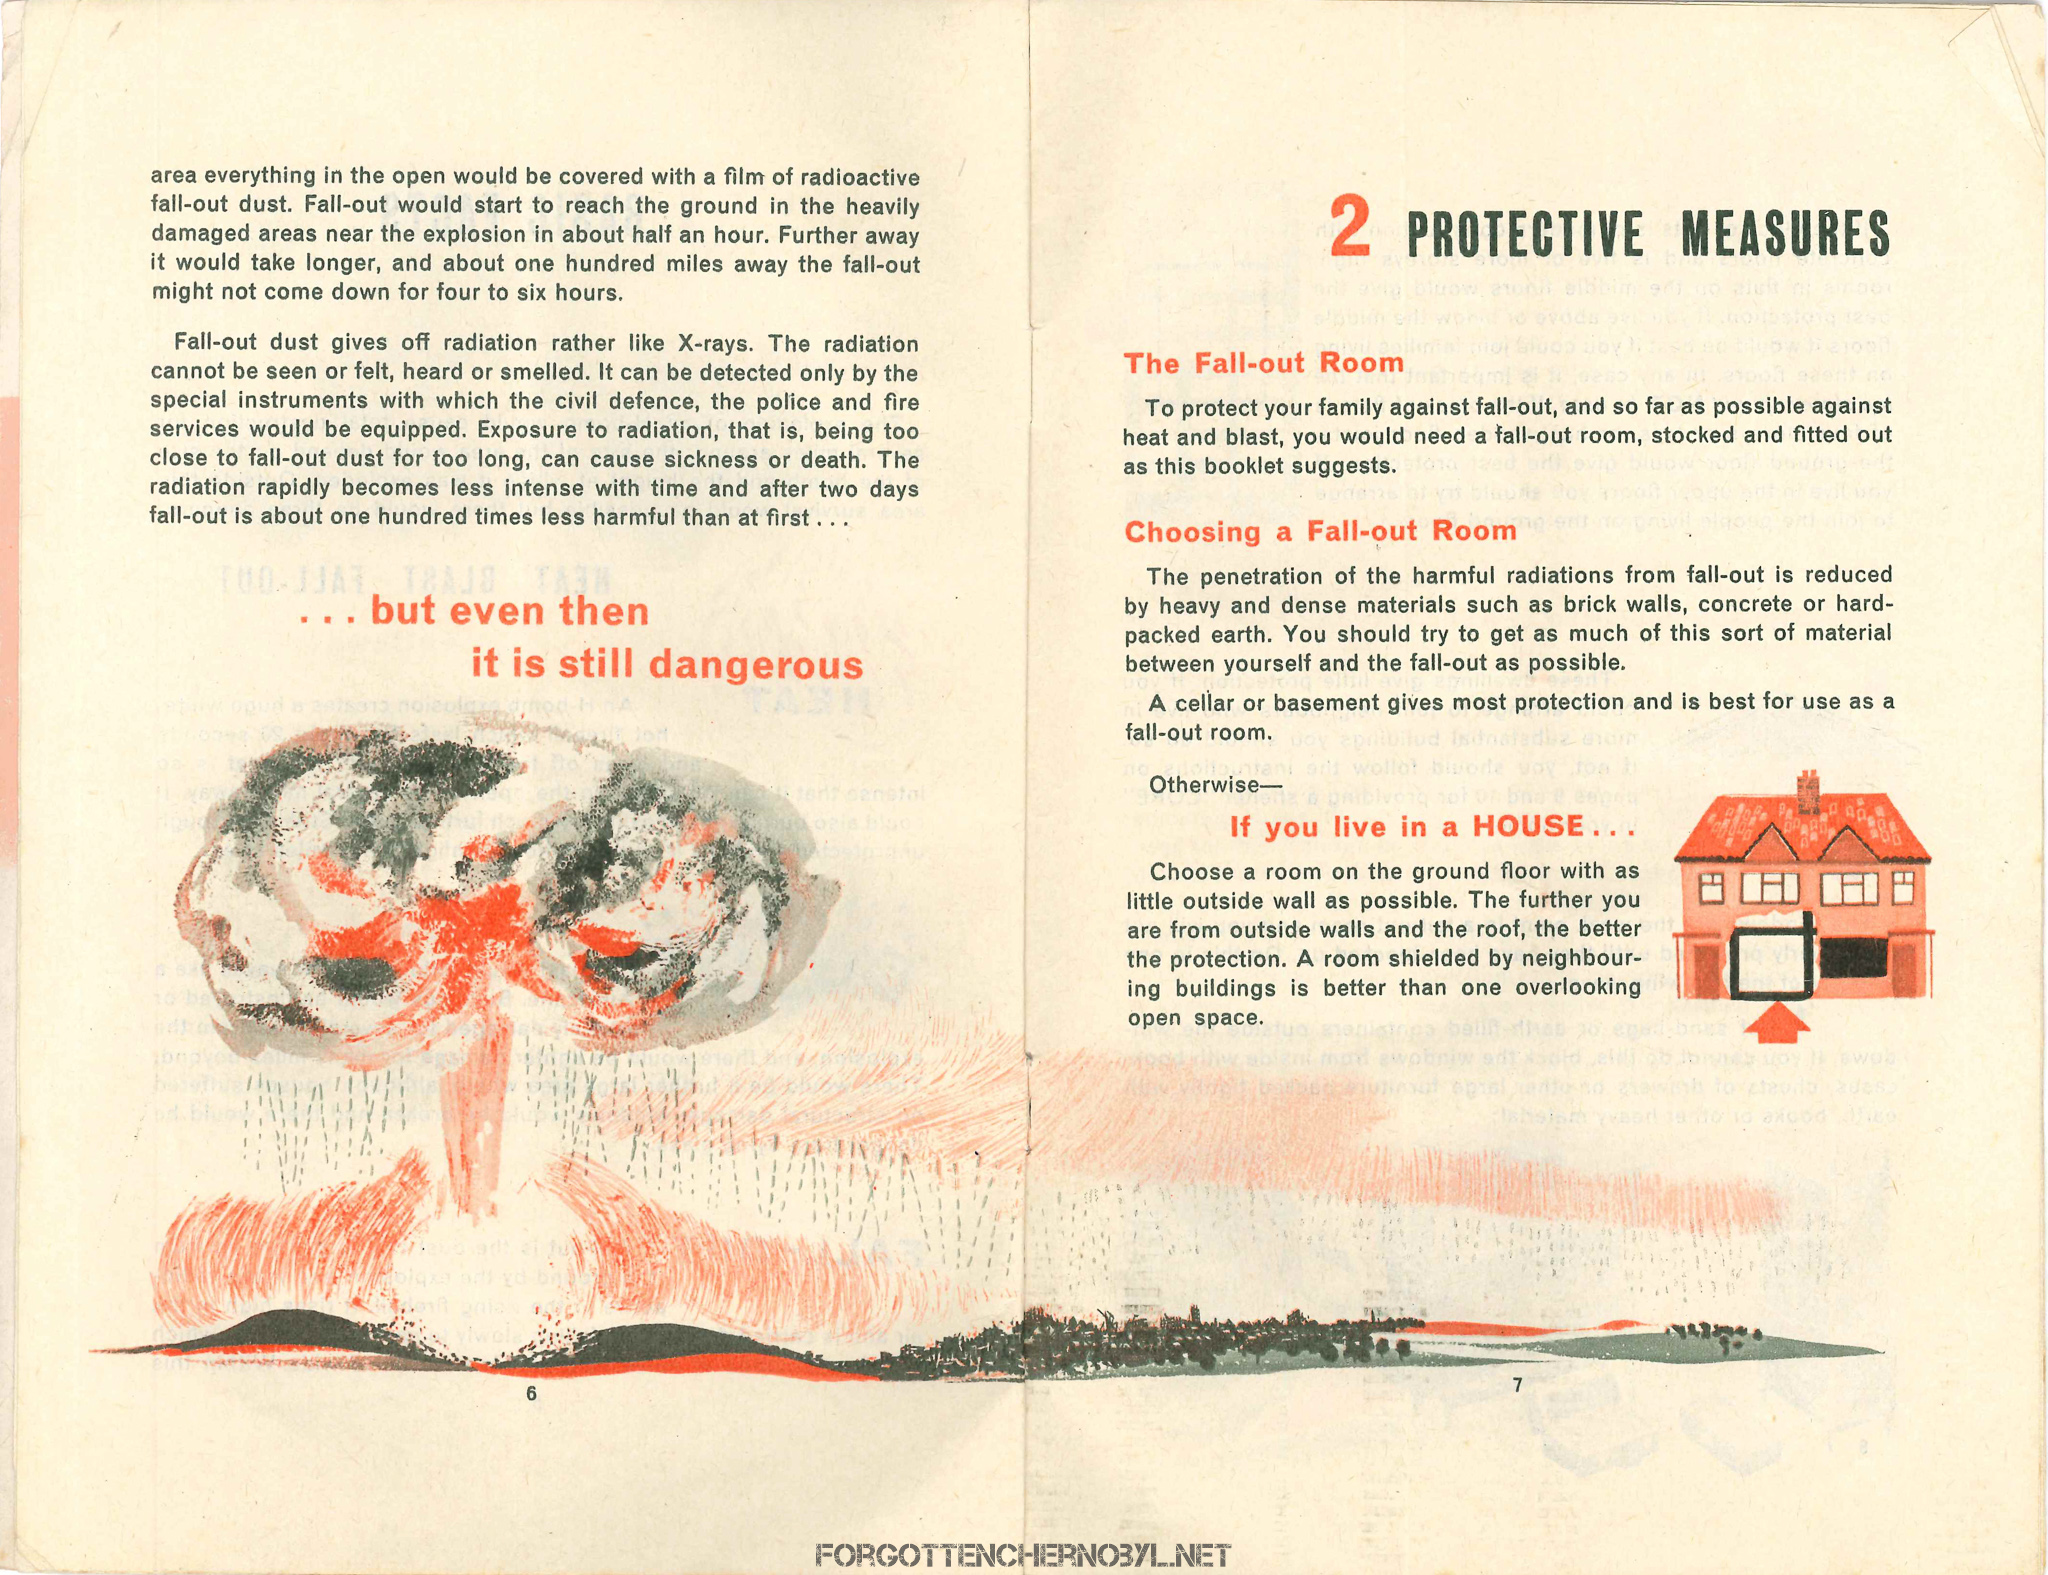 Advising the Householder on Protection against Nuclear Attack booklet